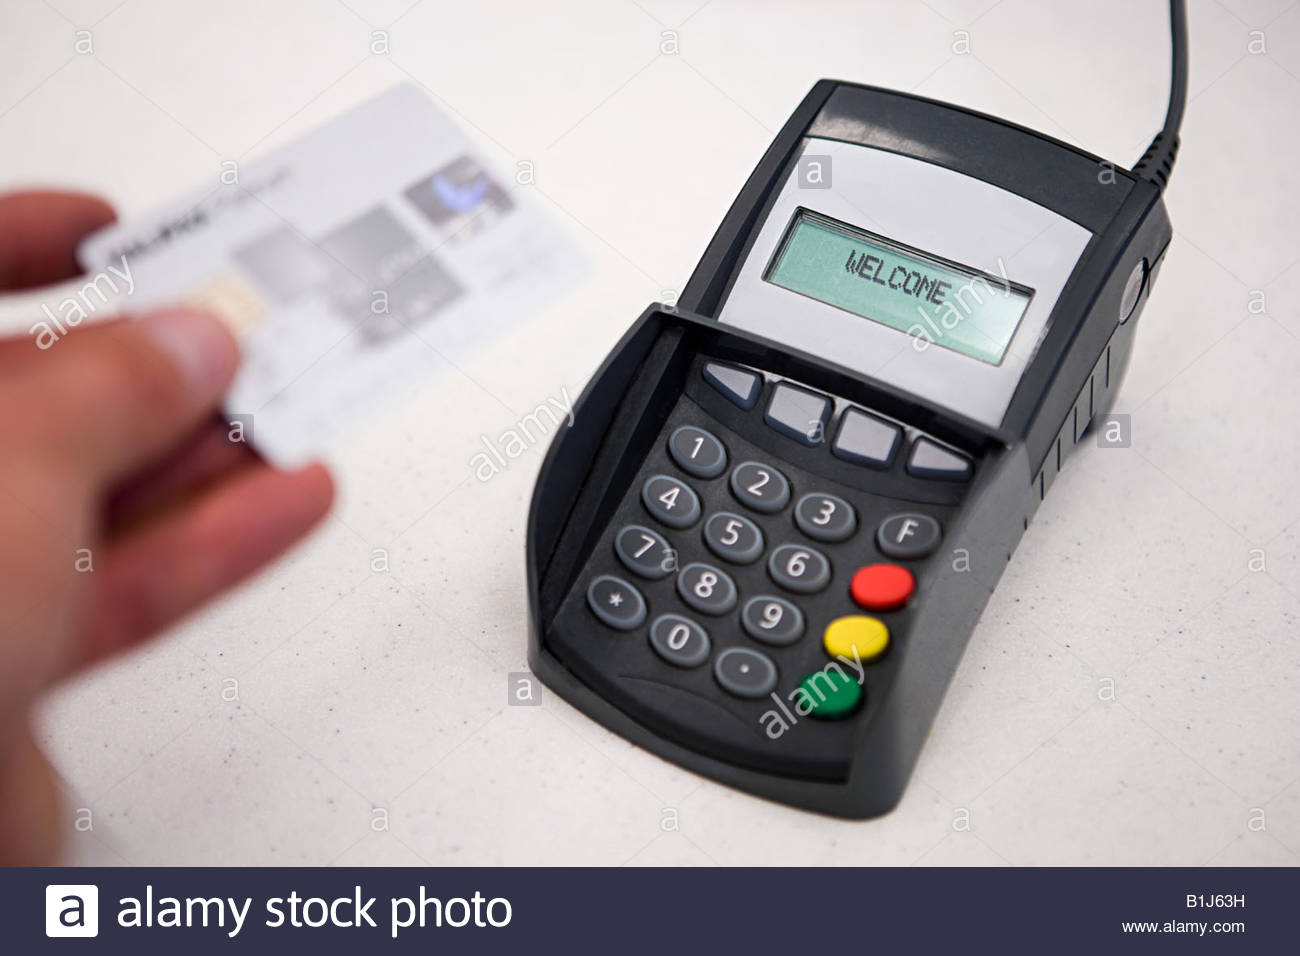 Person and credit card reader - Stock Image